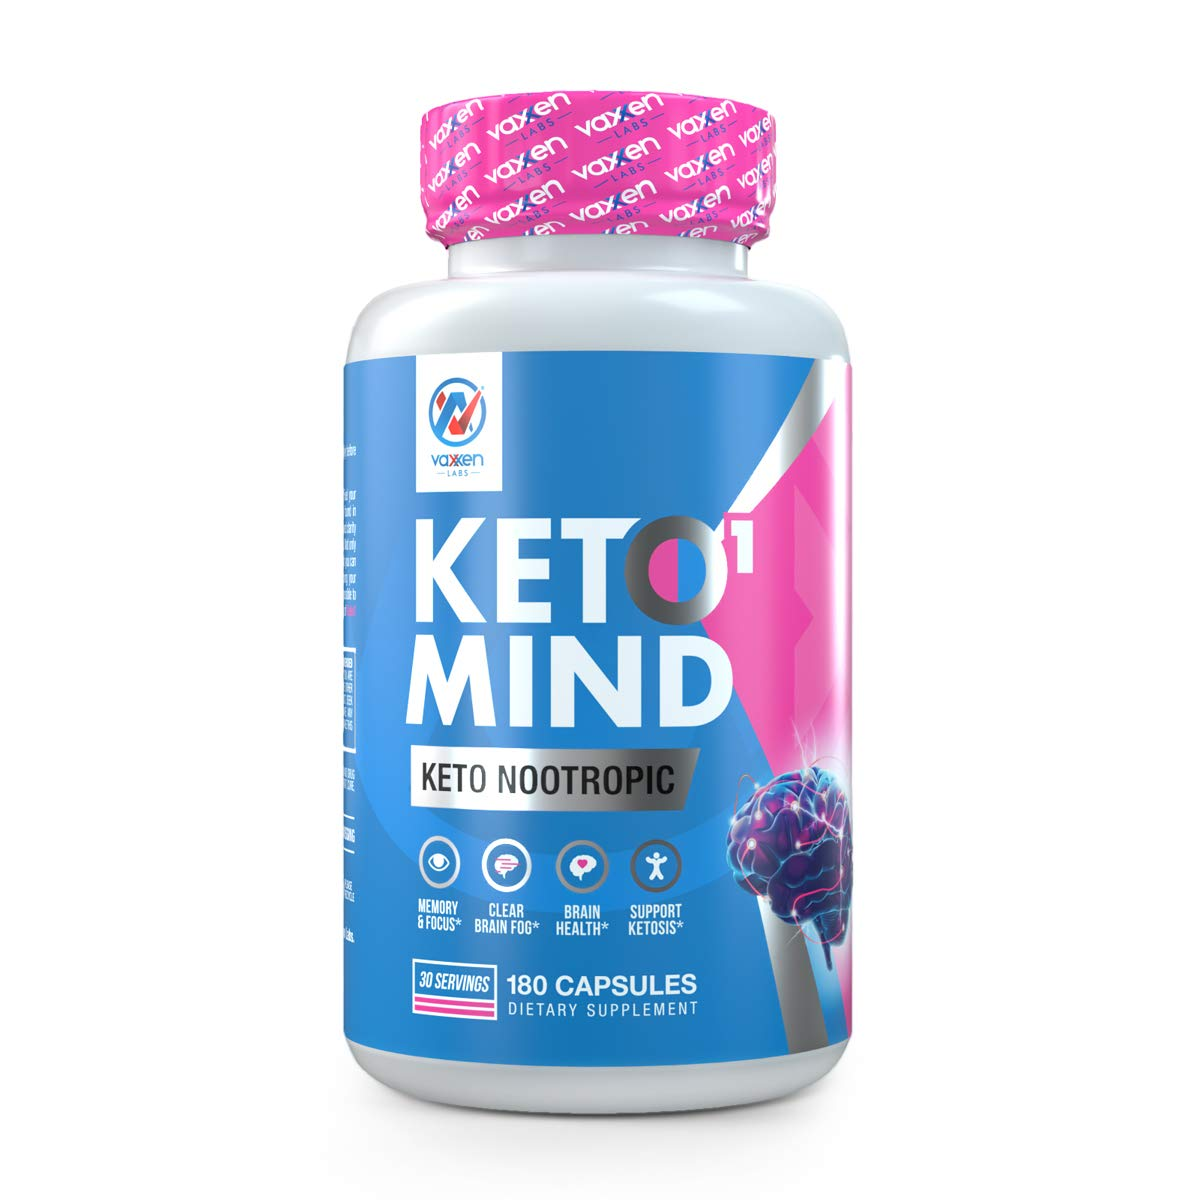 Vaxxen Labs Keto1 Mind Nootropic Product to Clear Brain Fog, Enhance Mood and Support Ketosis with Alpha GPC, Tyrosine & Beta Hydroxybutyrate - 30 Day Supply by Vaxxen Labs